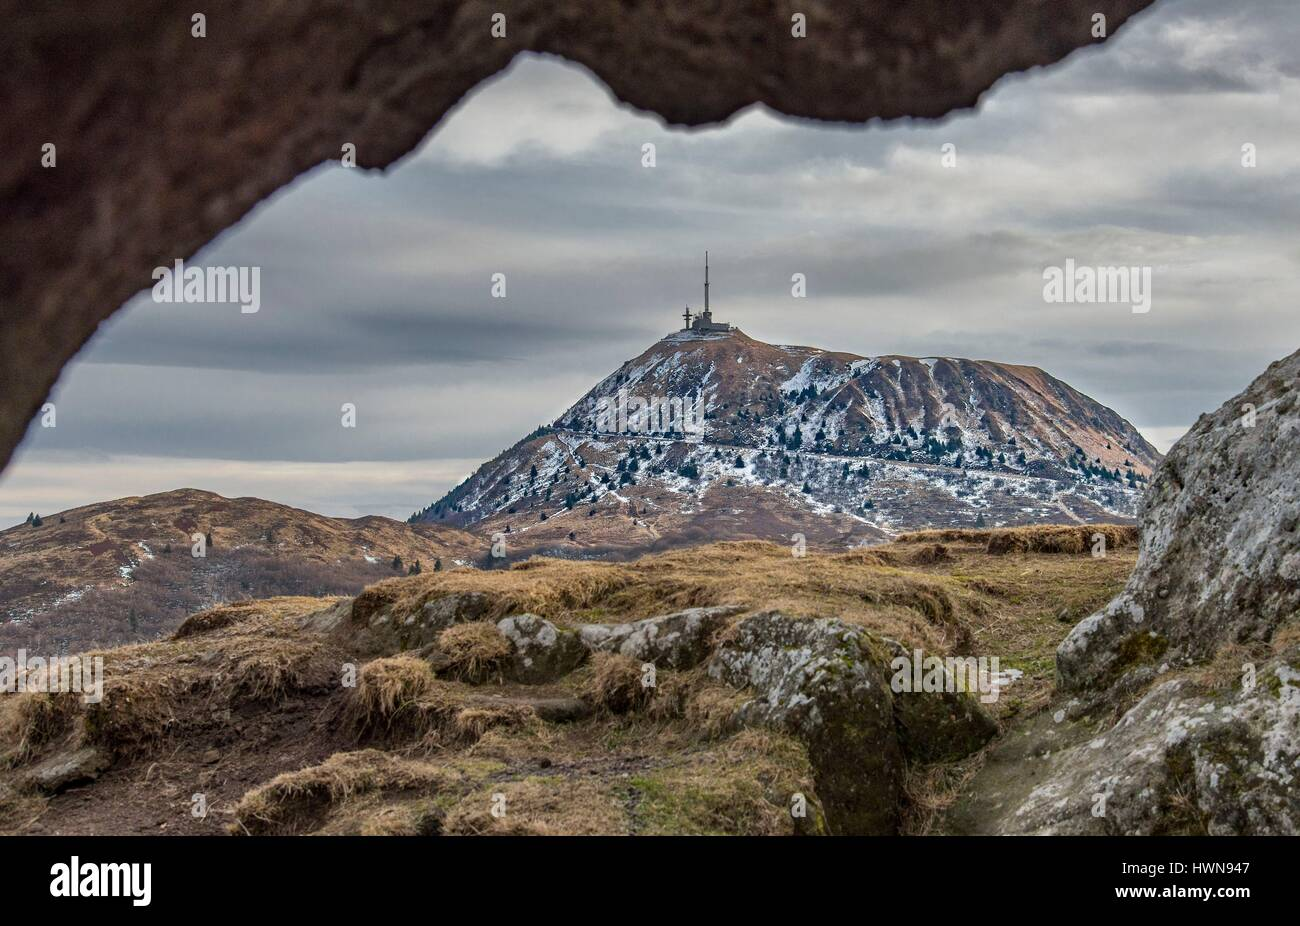 France, Puy de Dome, the Regional Natural Park of the Volcanoes of Auvergne, Chaine des Puys, Orcines, view of the - Stock Image